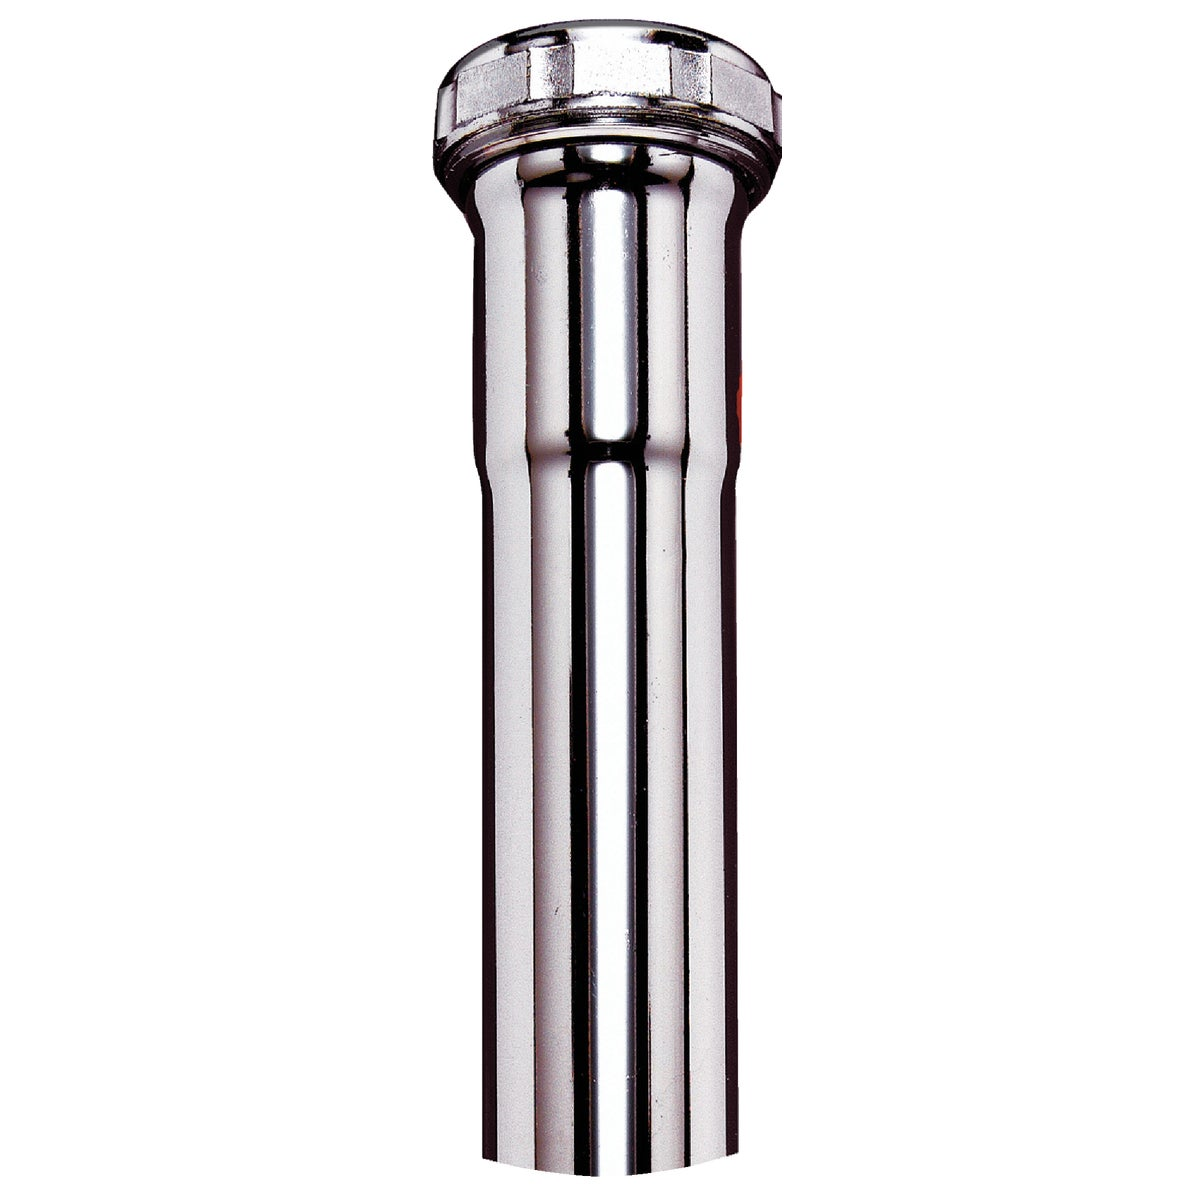 1-1/4X6 22GA SJ EXT TUBE - 1901K by Plumb Pak/keeney Mfg